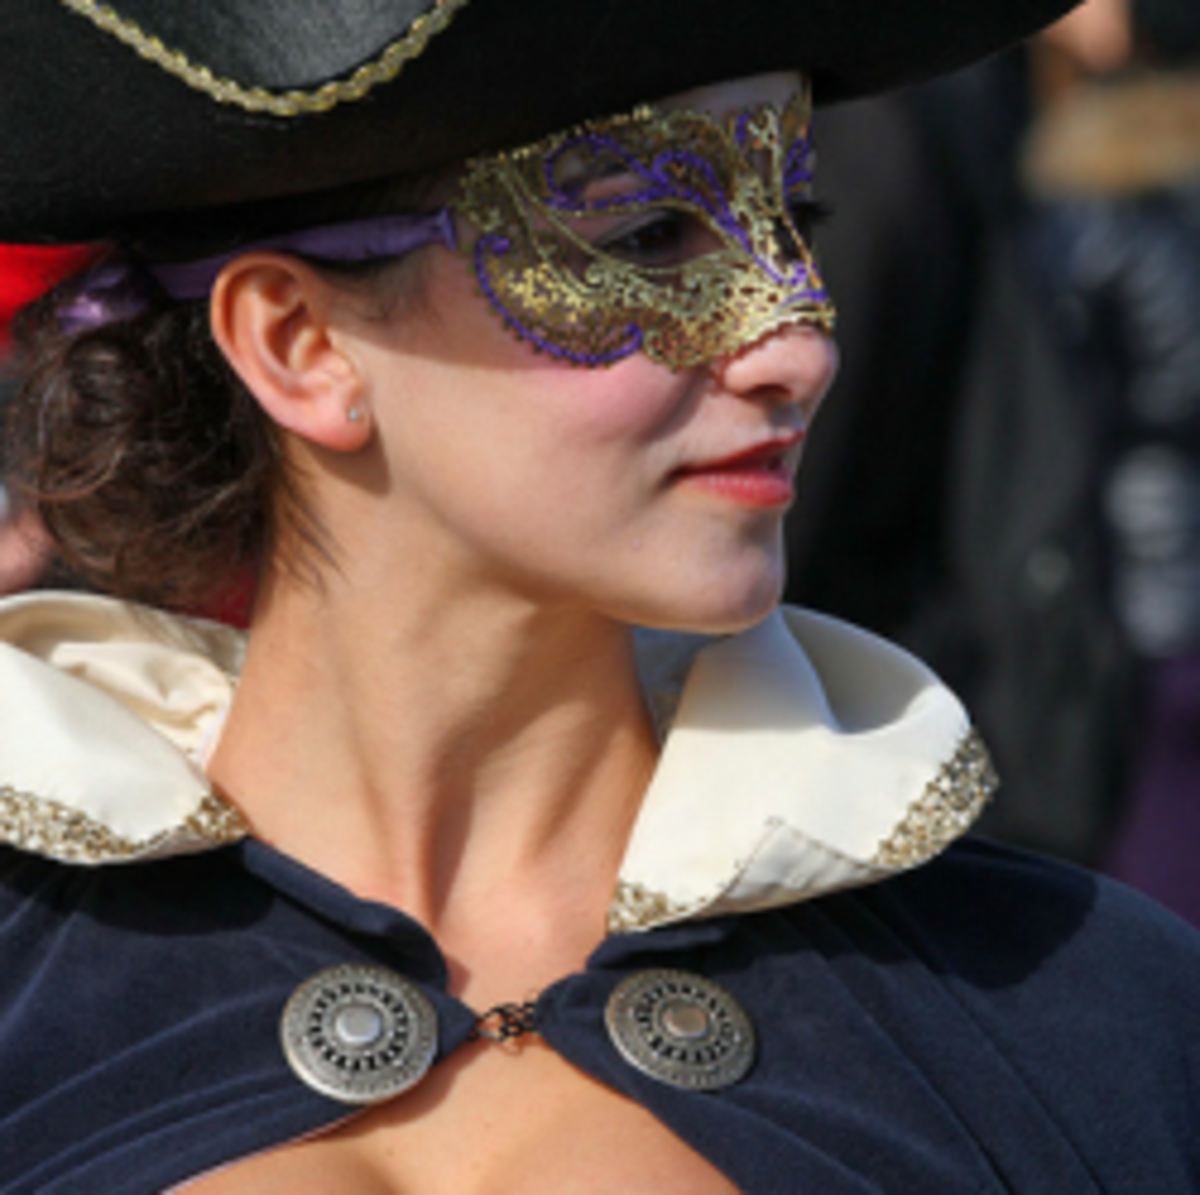 Best Halloween Costumes for Curvy Women - HubPages